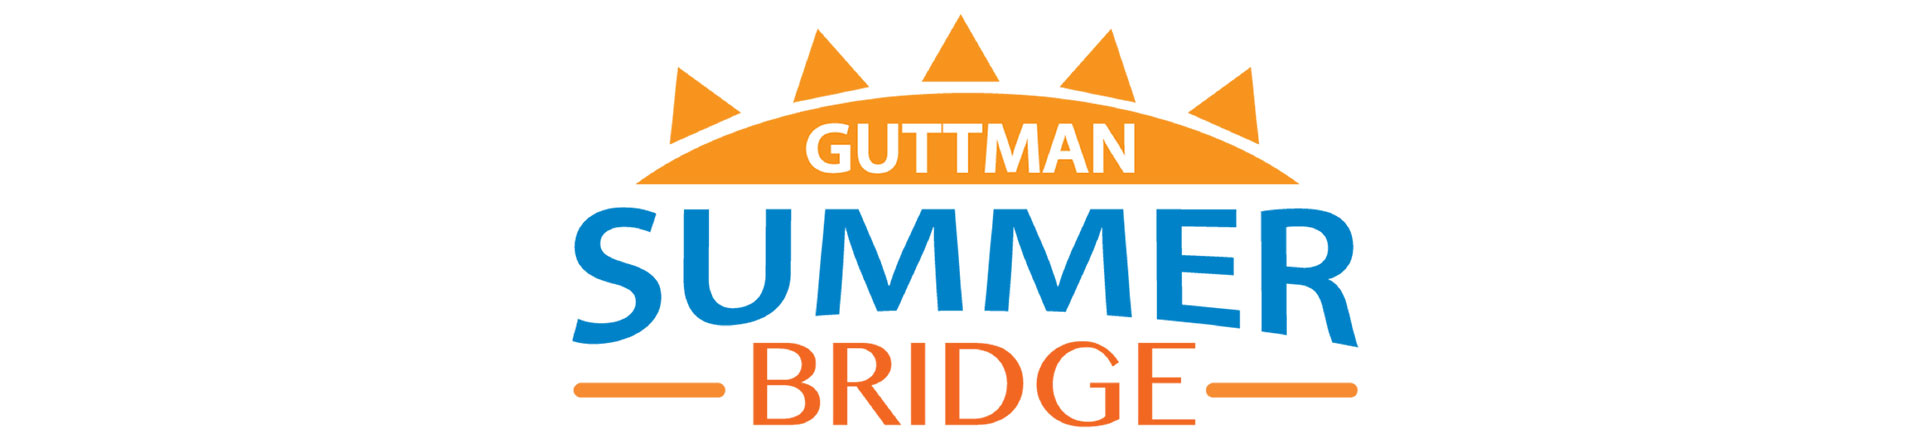 Guttman Summer Bridge logo